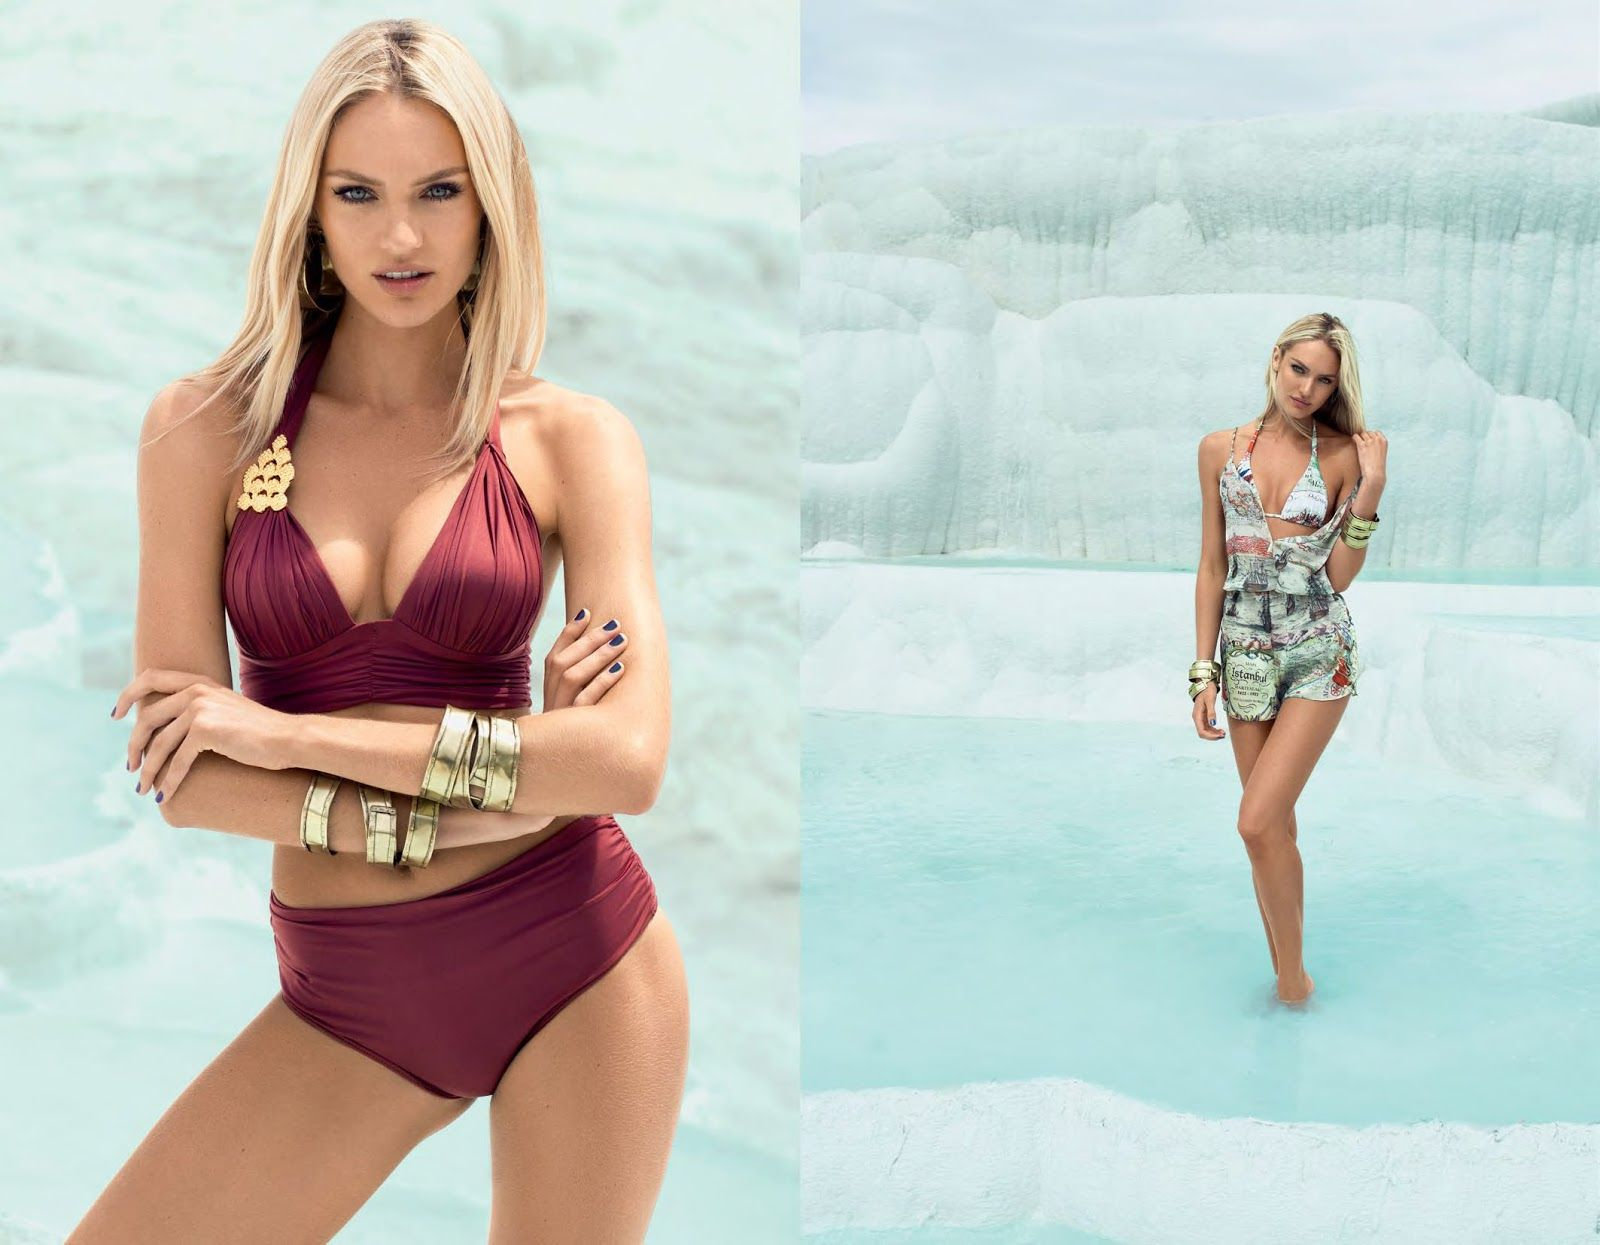 candice-swanepoel-bikini-shoot-photos-aguadecoco_2013catalog-6